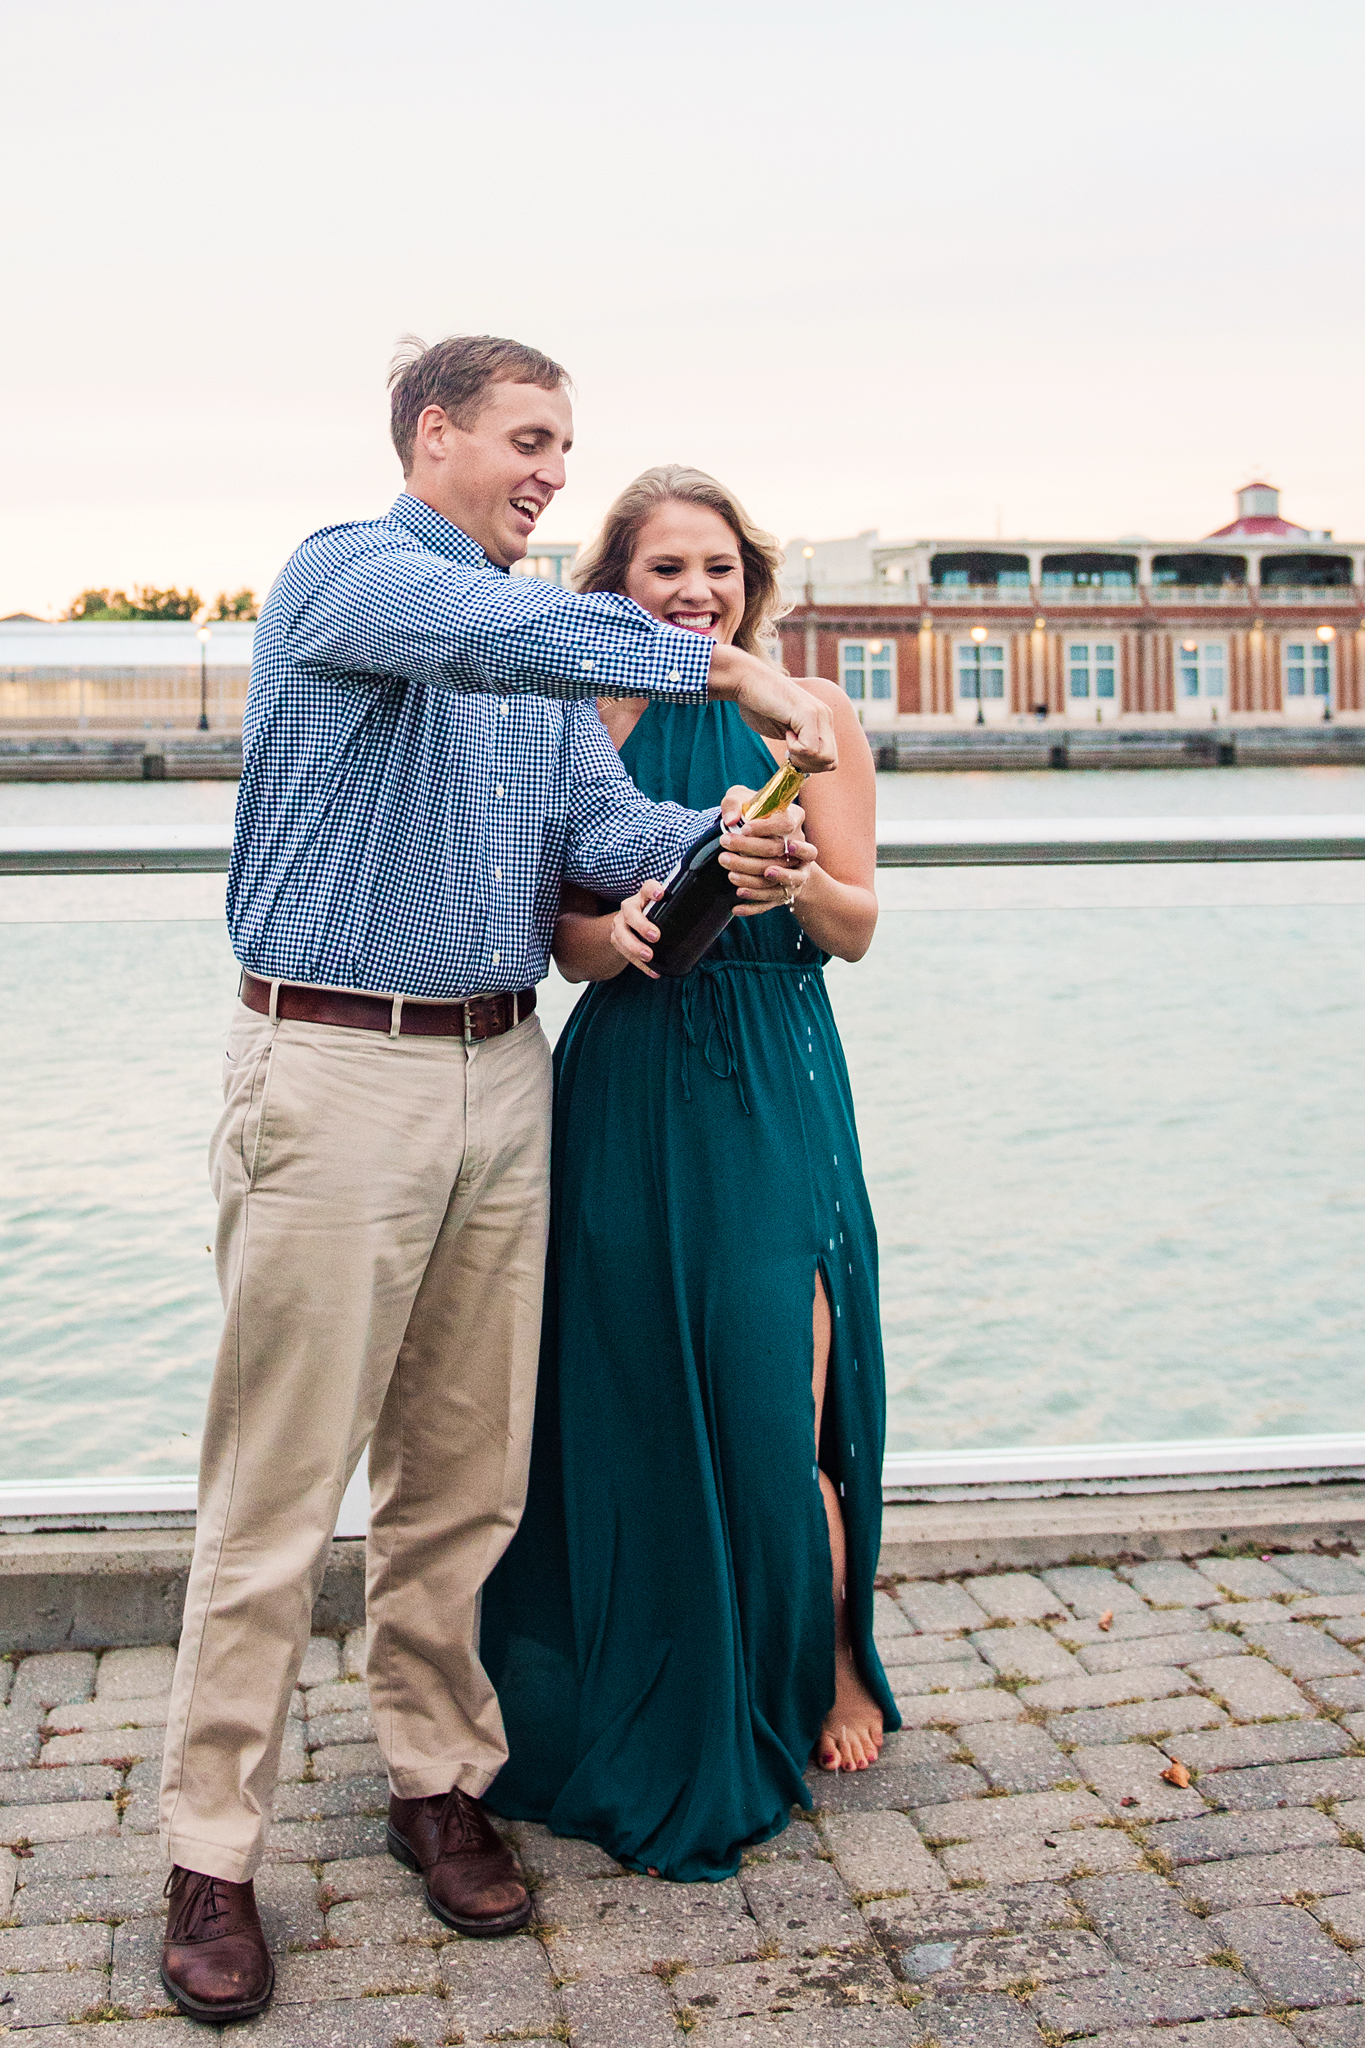 George_Eastman_House_Rochester_Yacht_Club_Rochester_Engagement_Session_JILL_STUDIO_Rochester_NY_Photographer_DSC_8283.jpg